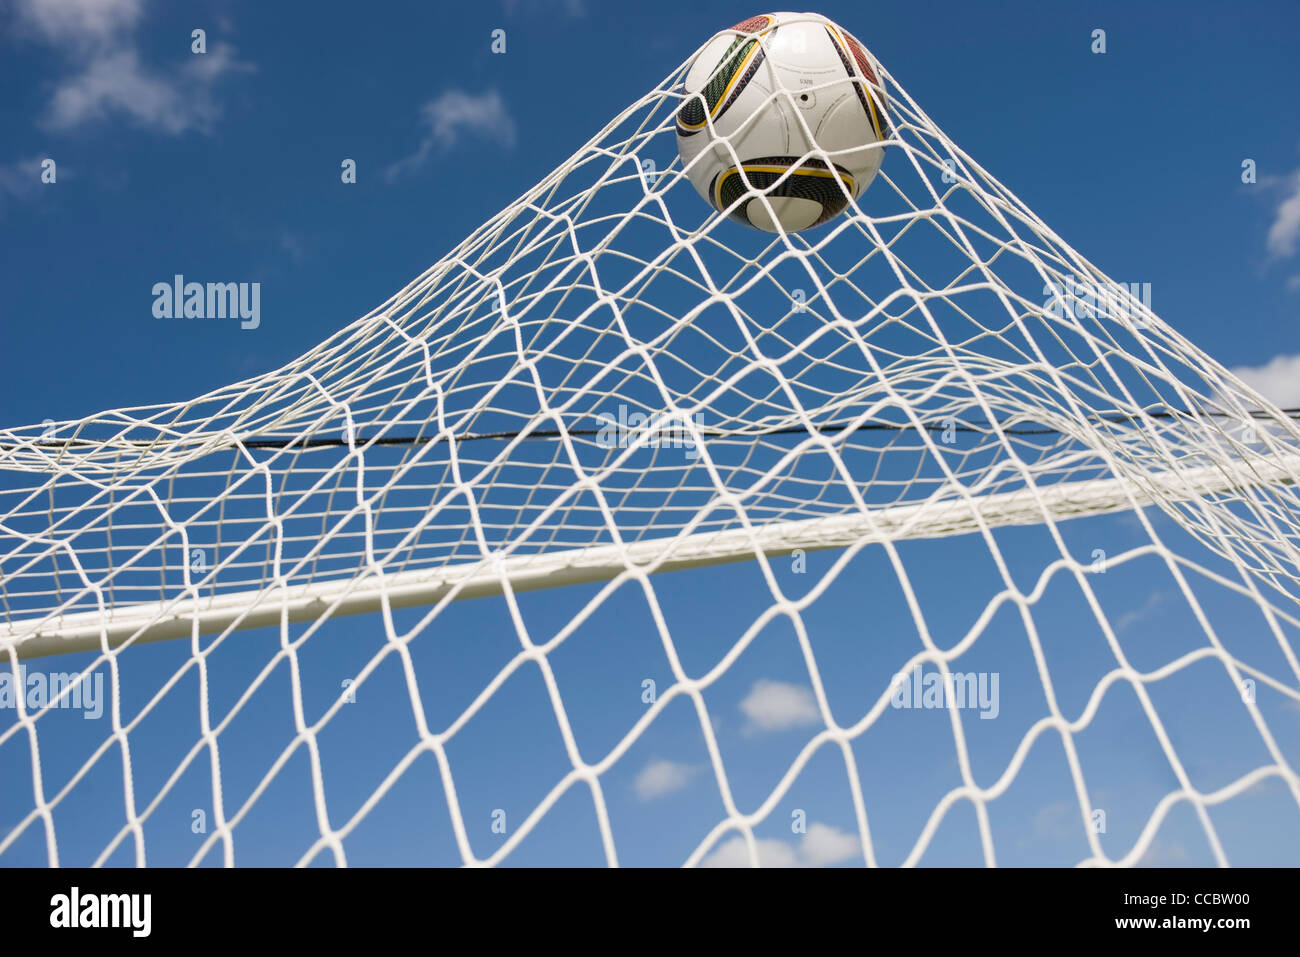 Soccer ball hitting net - Stock Image